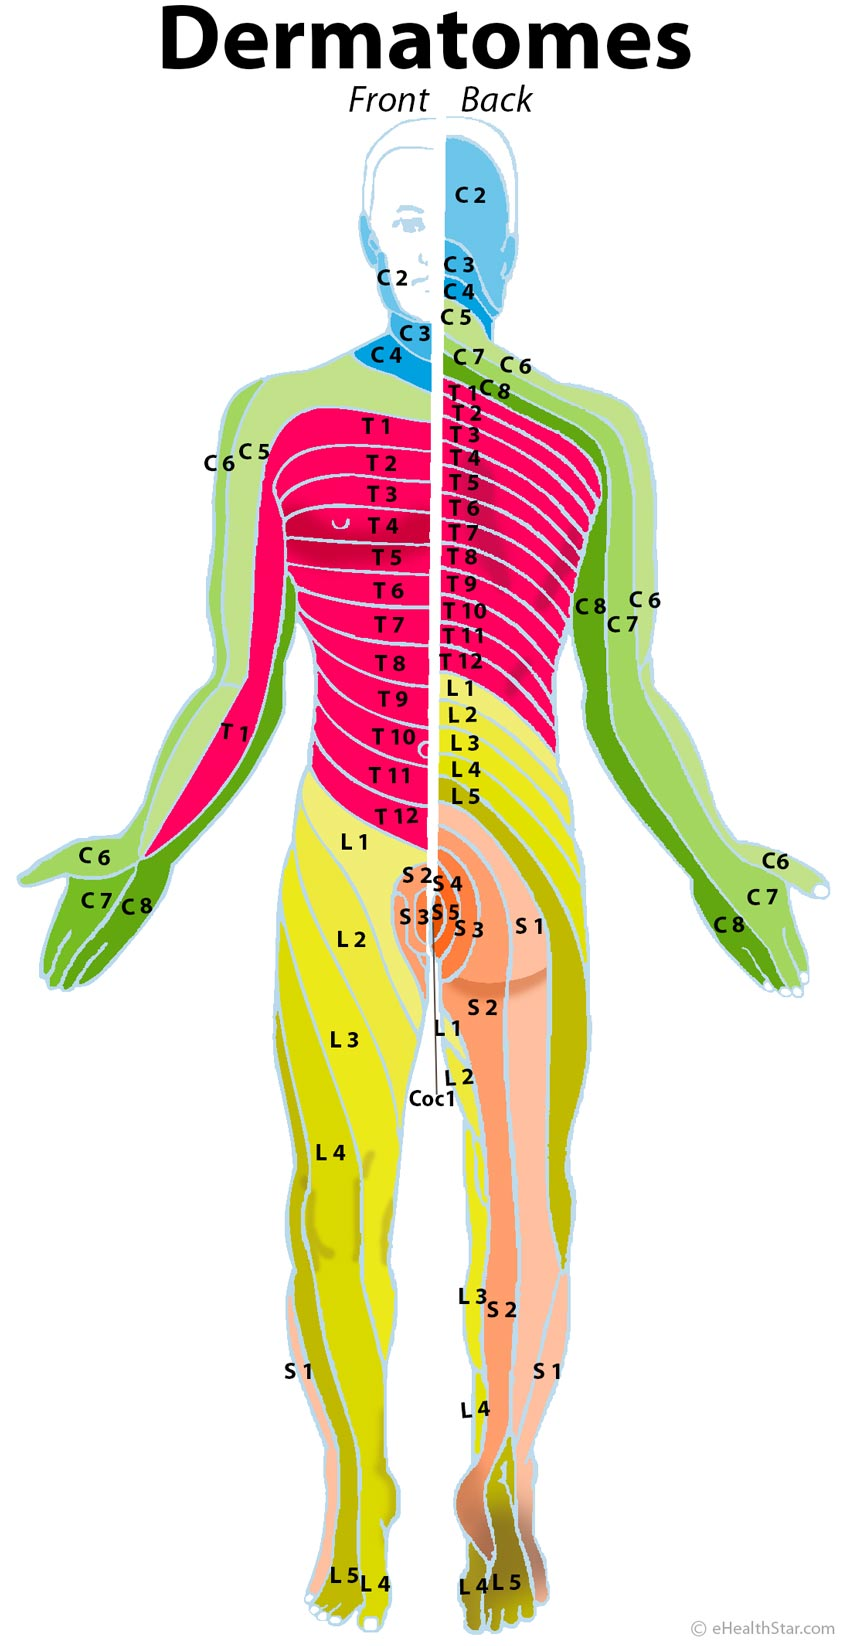 Dermatomes: cervical, thoracic, lumbar, scaral